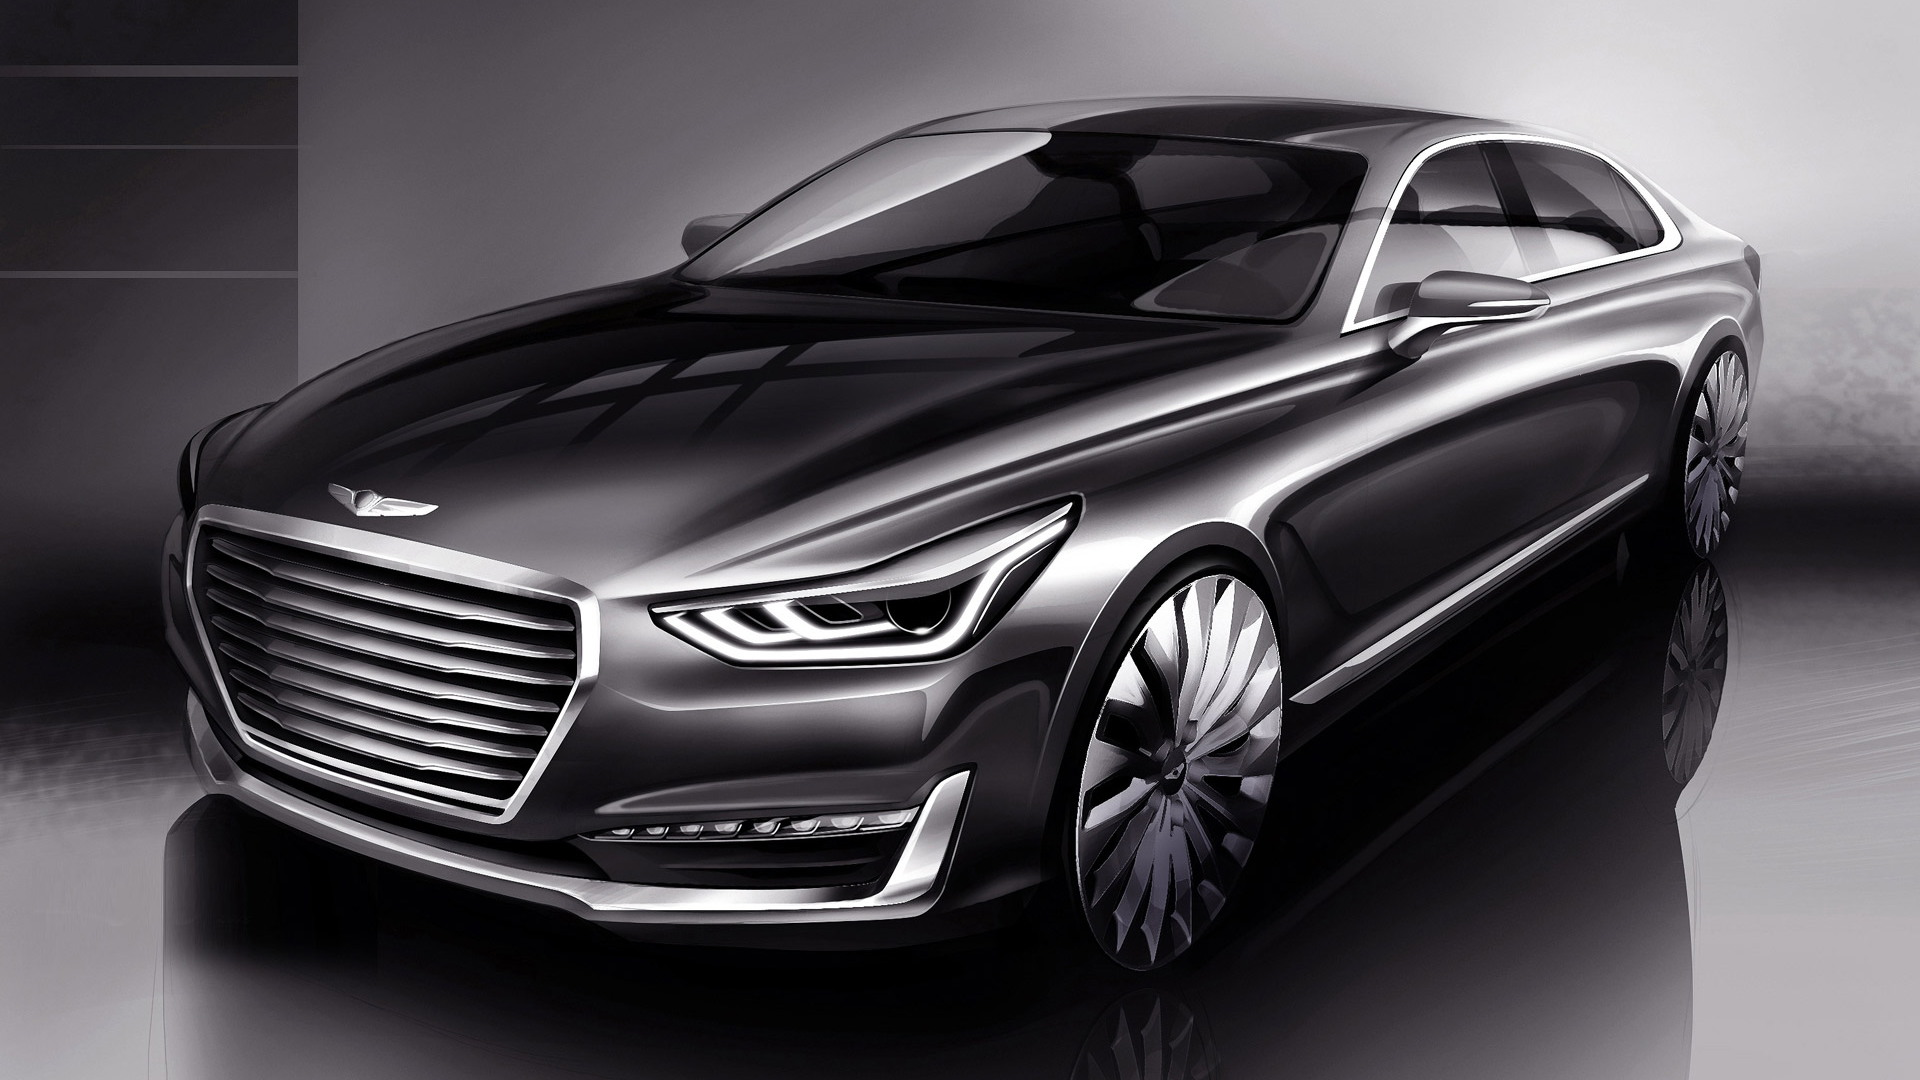 Genesis G90 The Replacement For The Hyundai Equus Teased